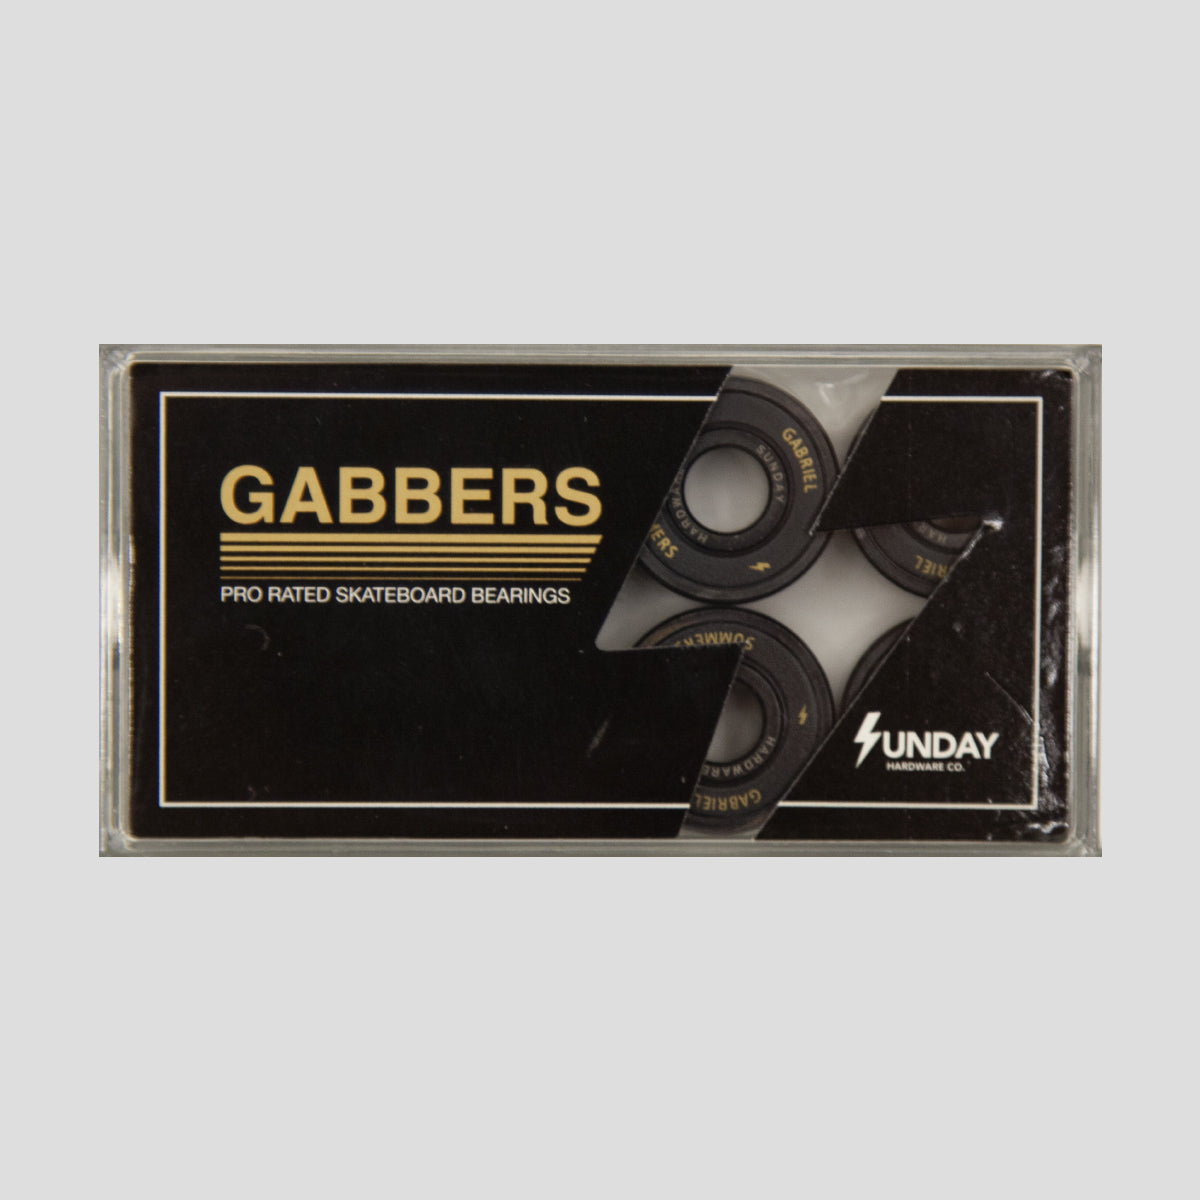 SUNDAY HARDWARE GABRIEL SUMMERS PRO RATED BEARINGS